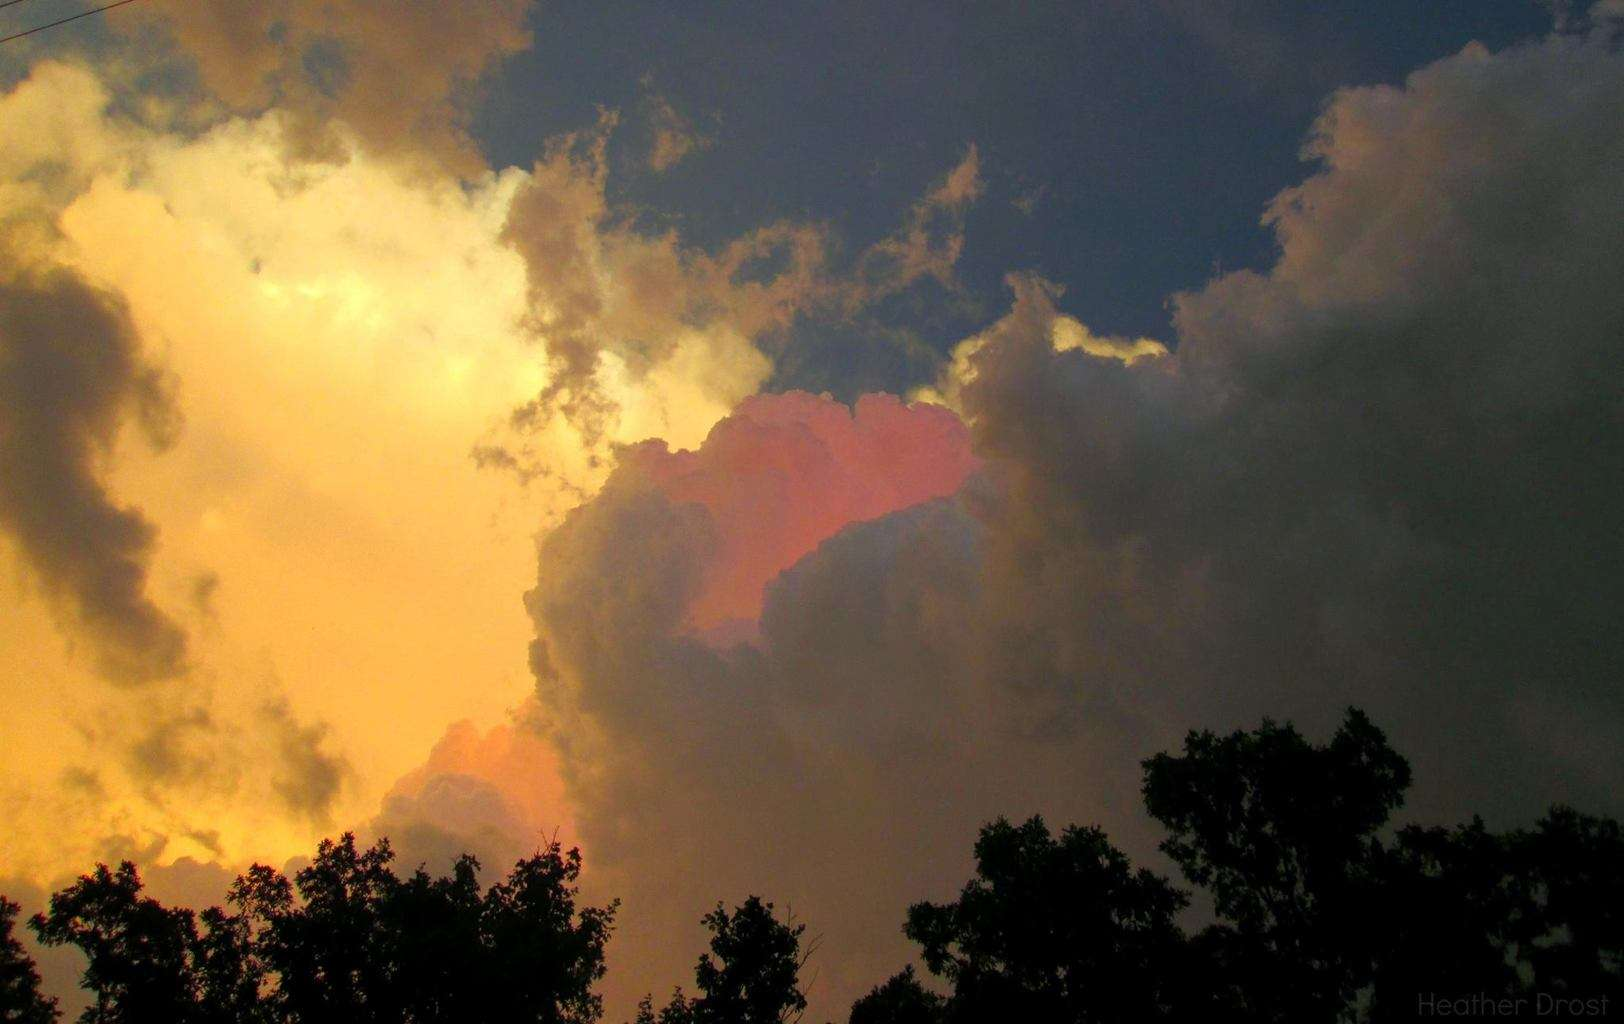 Here are some colorful cumulus cloud tops, each layer being lit up a different color at sunset after the storm passed through. I thought the vibrant pink in the middle was truly amazing. I captured this photo last July, I can't wait until storm season picks up again here this year.